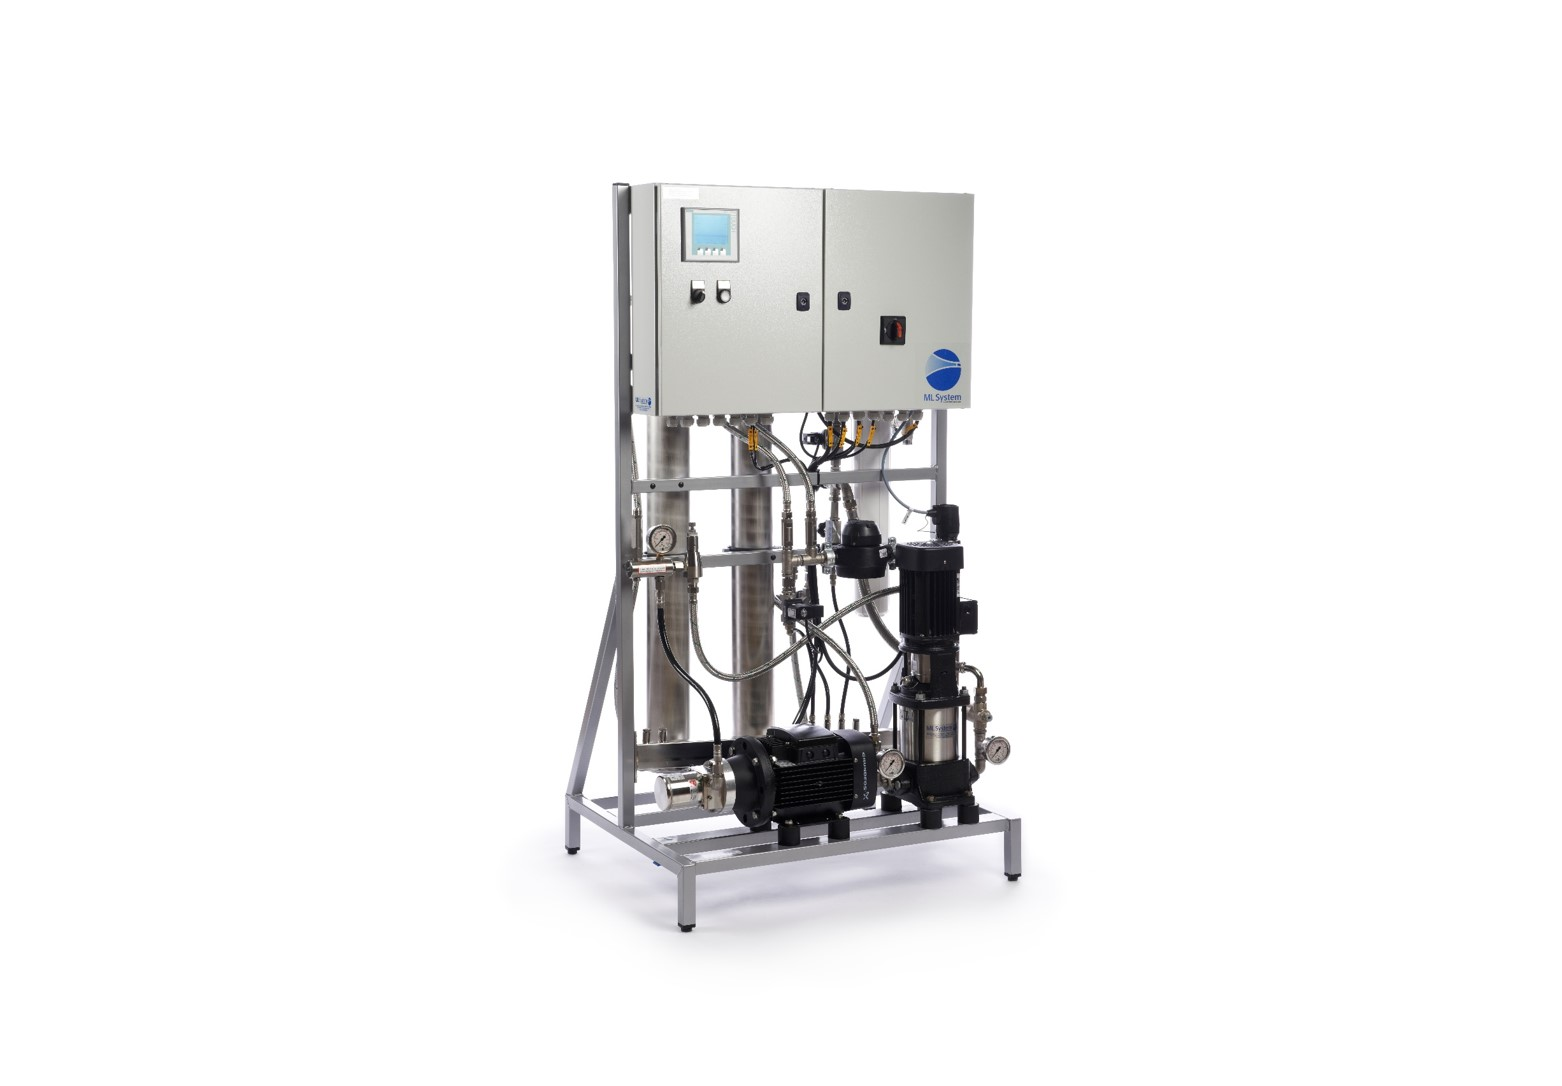 a56479a73329b9c3ccc4ead63c7371e43388ad65?image_crop_resized=640x445 mlp ro water treatment for the ml air humidification systems  at bayanpartner.co